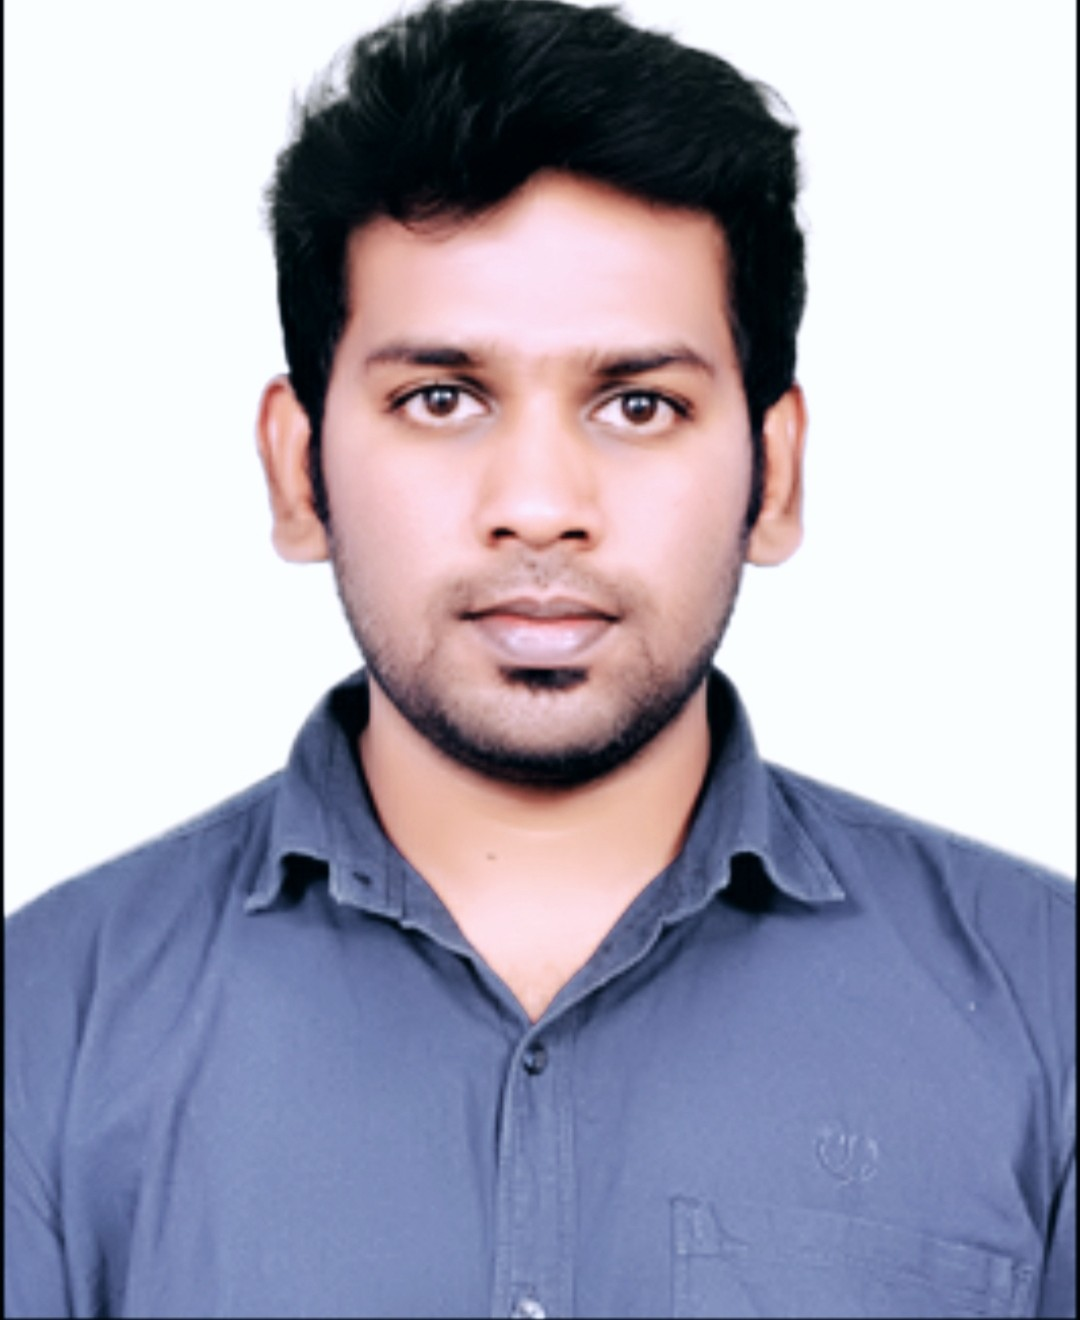 SUDARSHAN B Profile Picture